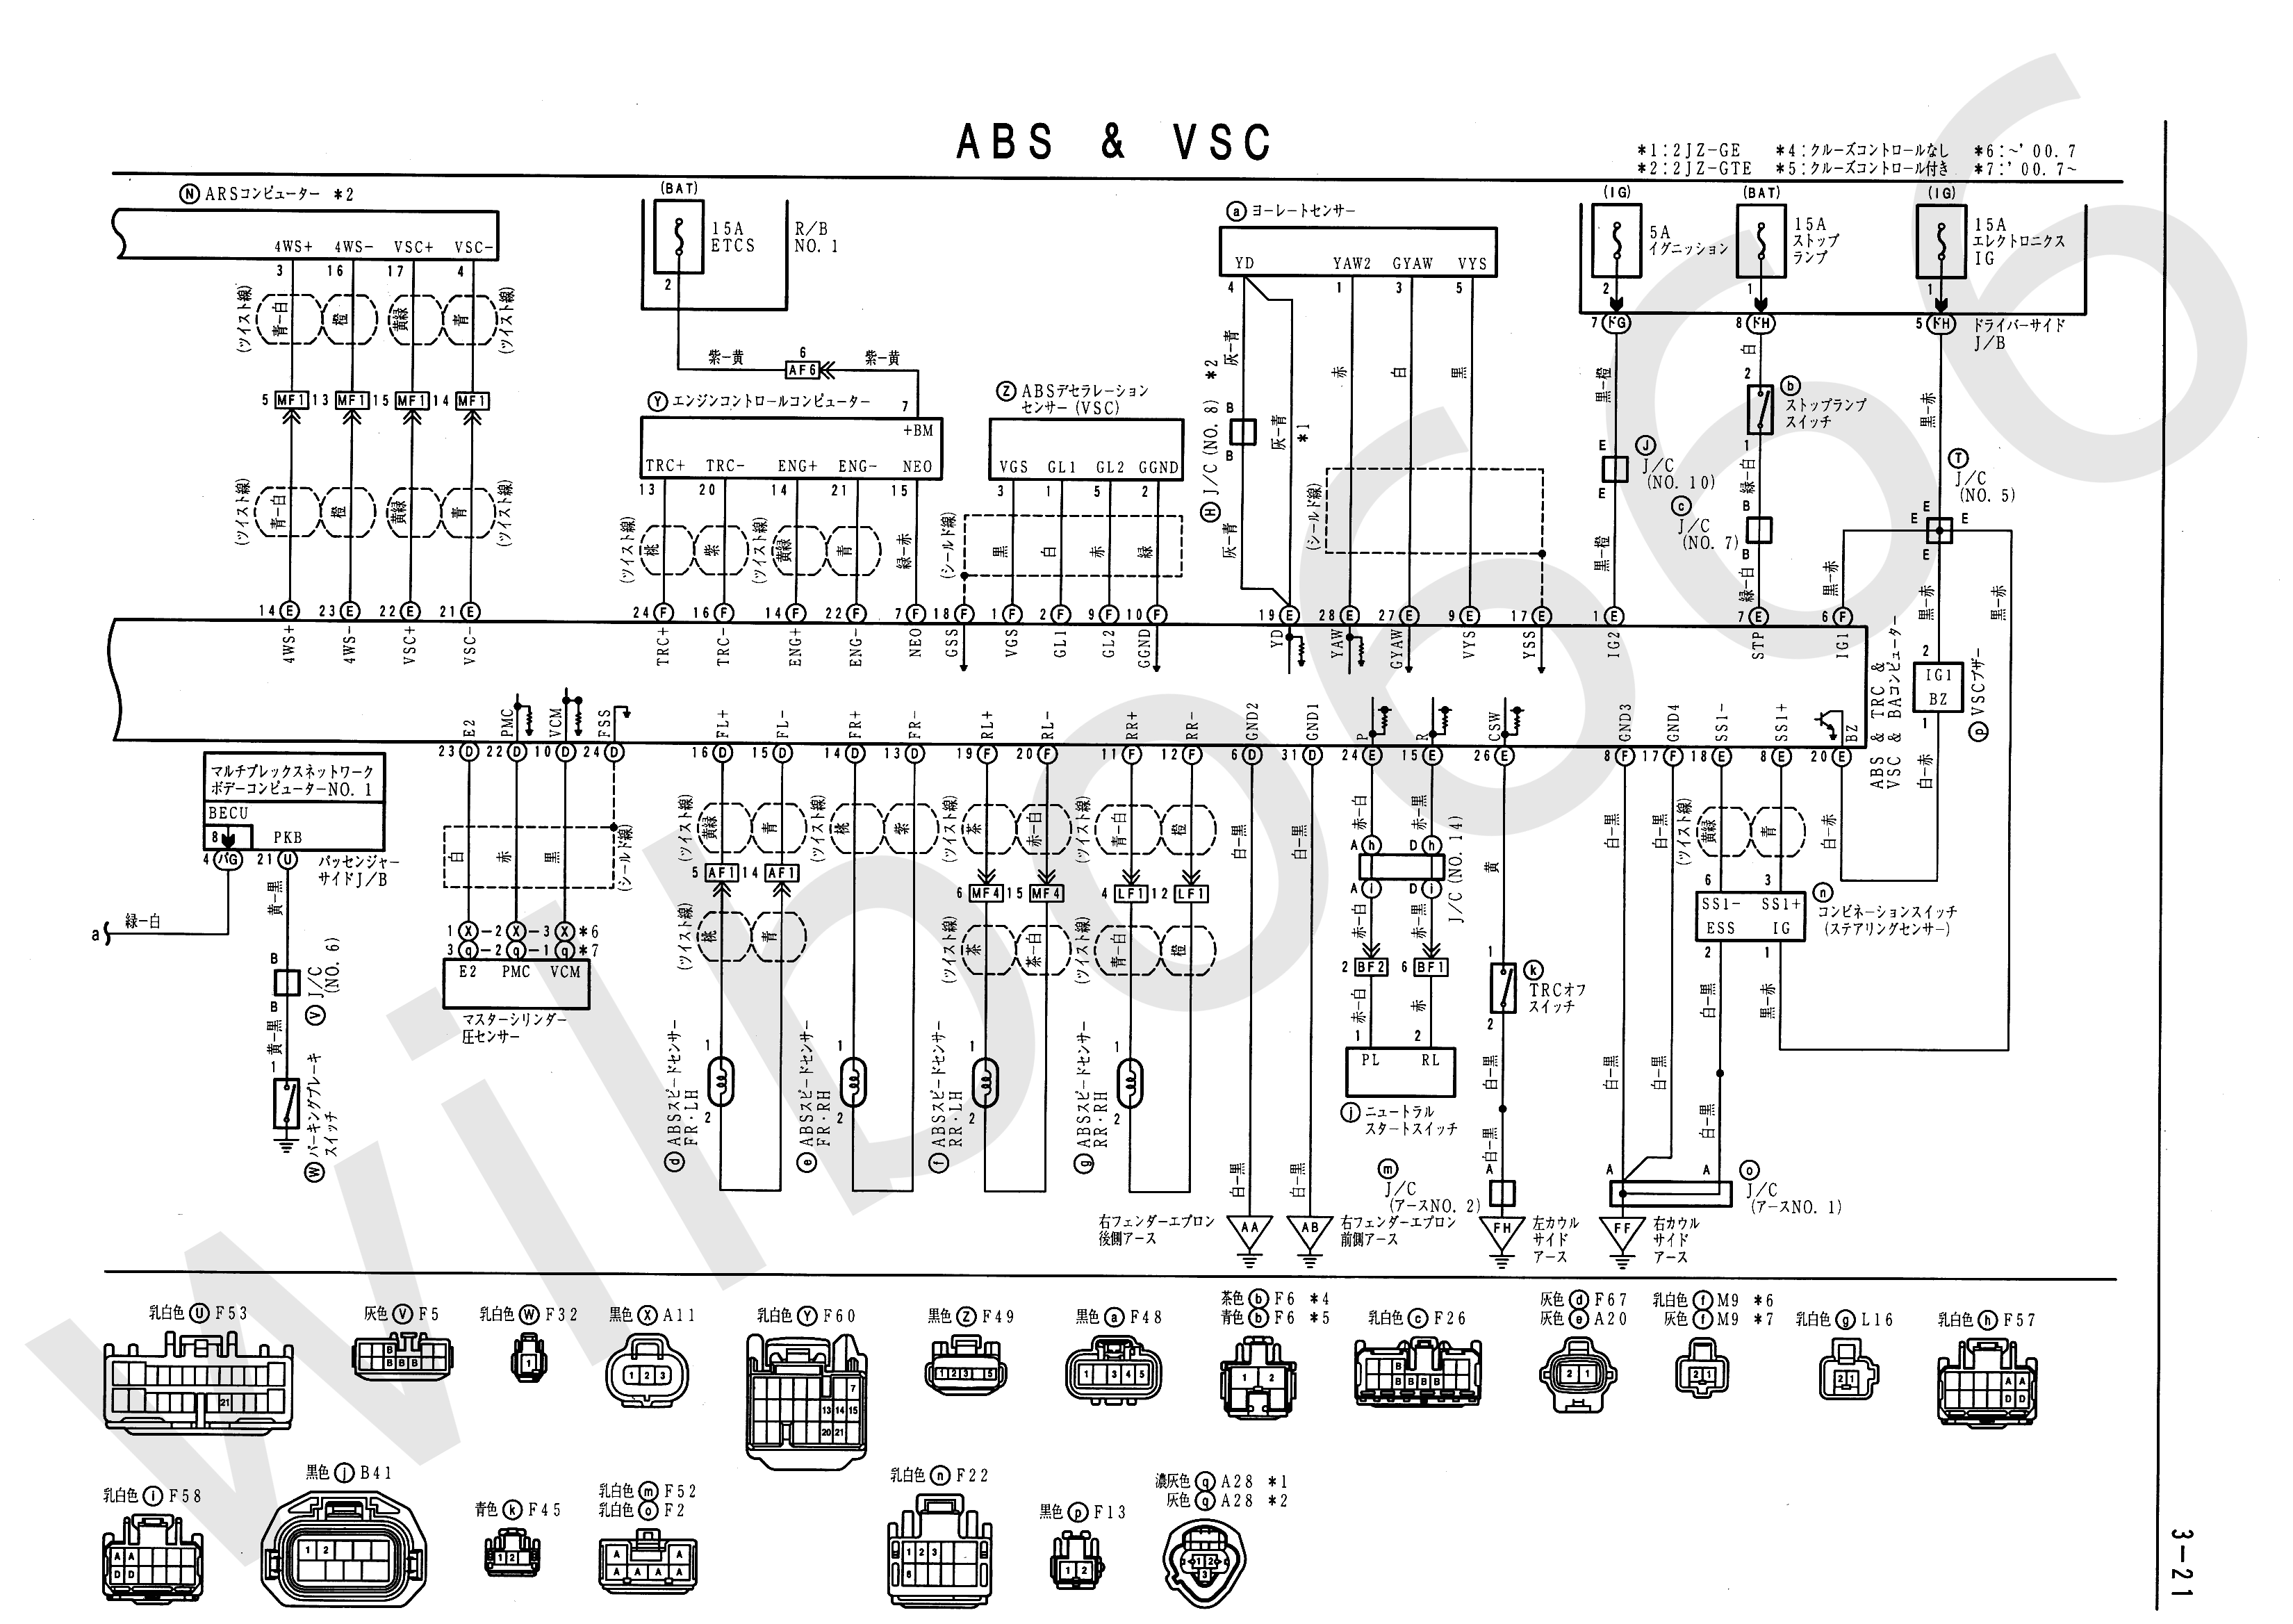 JZS161 Electrical Wiring Diagram 6748505 3 21 wilbo666 2jz gte vvti jzs161 aristo engine wiring 1jz vvti wiring diagram at couponss.co